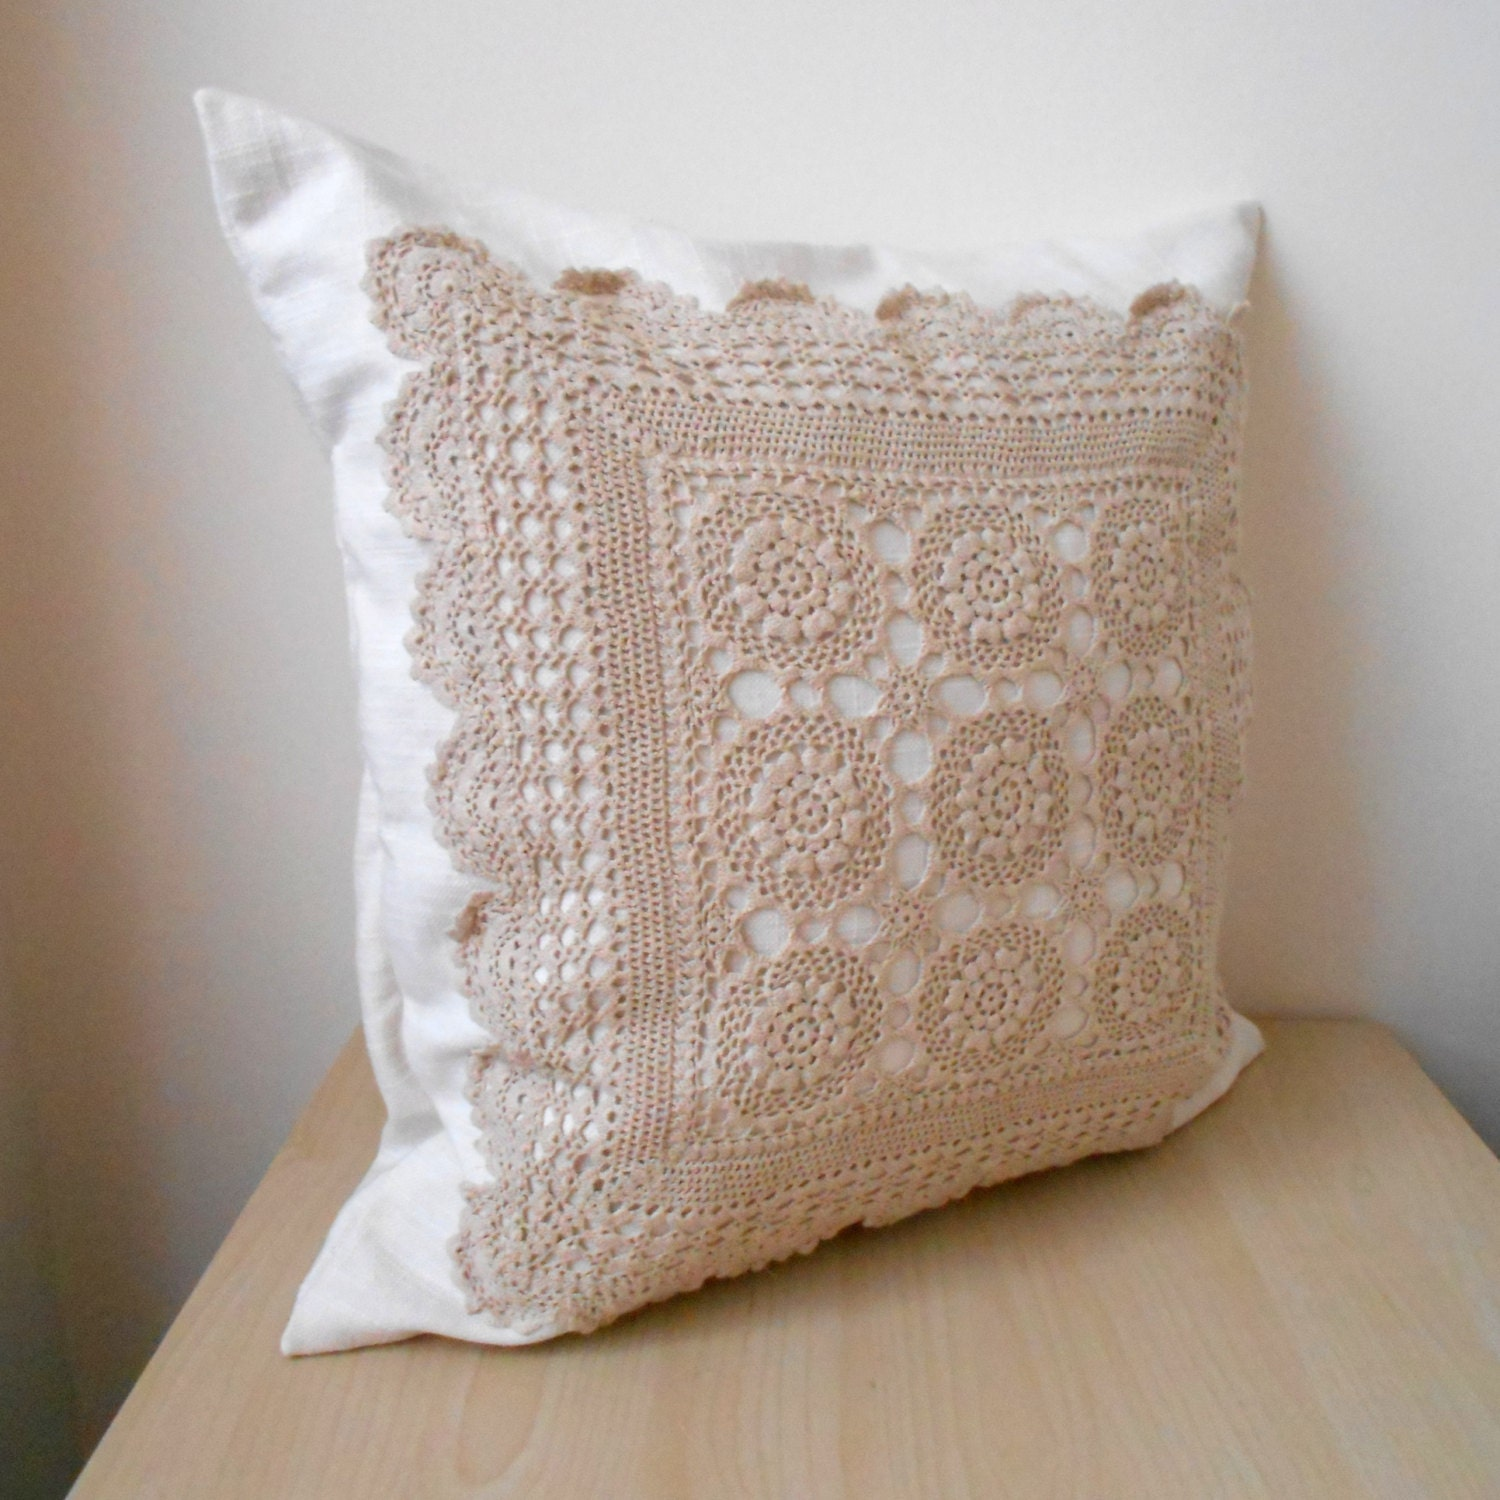 Throw Pillows With Lace : Large lace pillow cover beige lace throw pillow crochet lace